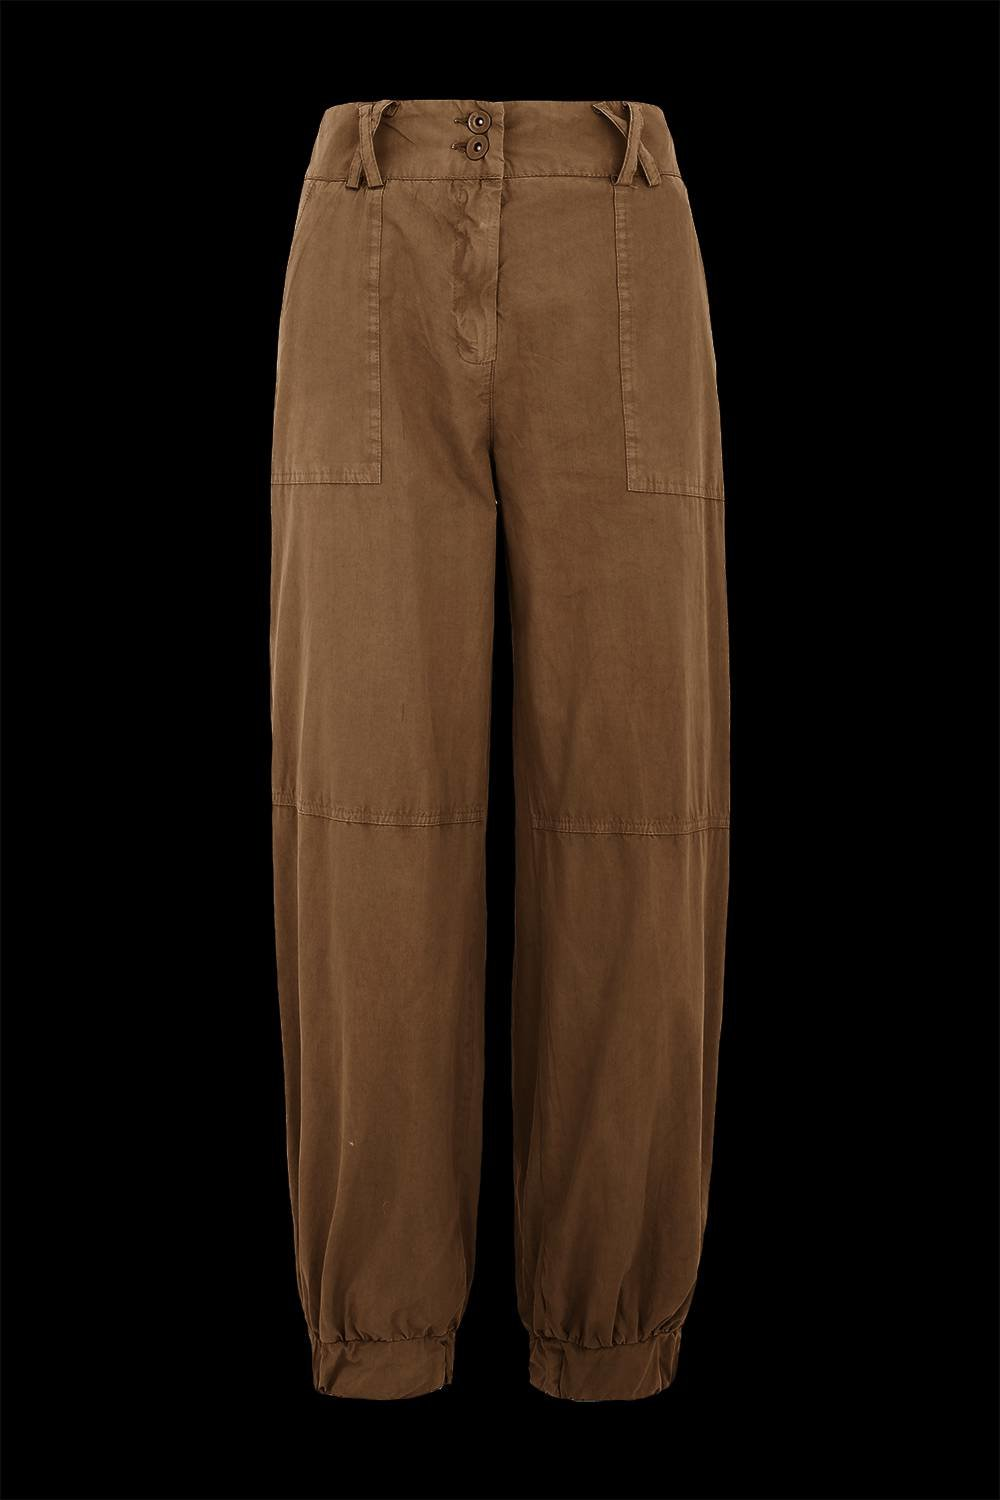 Trousers with fatigue pockets